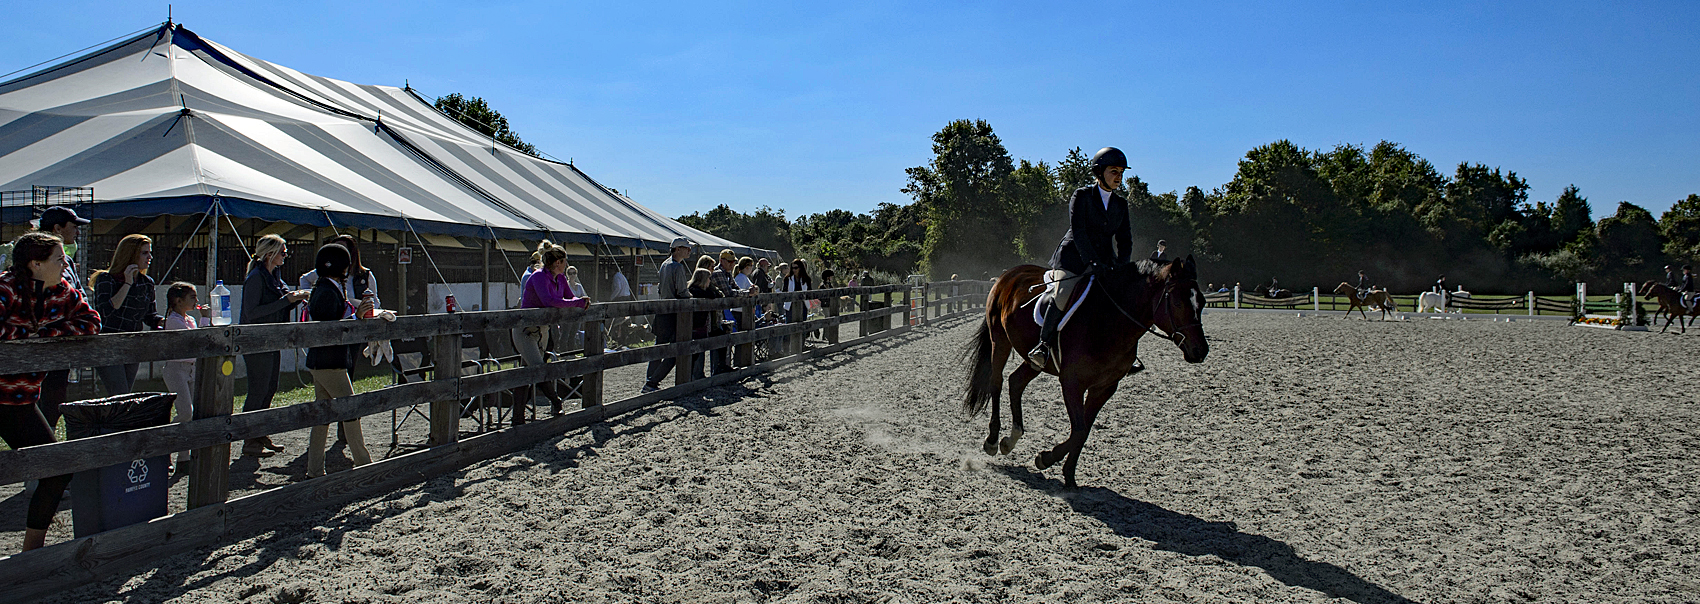 Equestrian and horse ride past a row of spectators